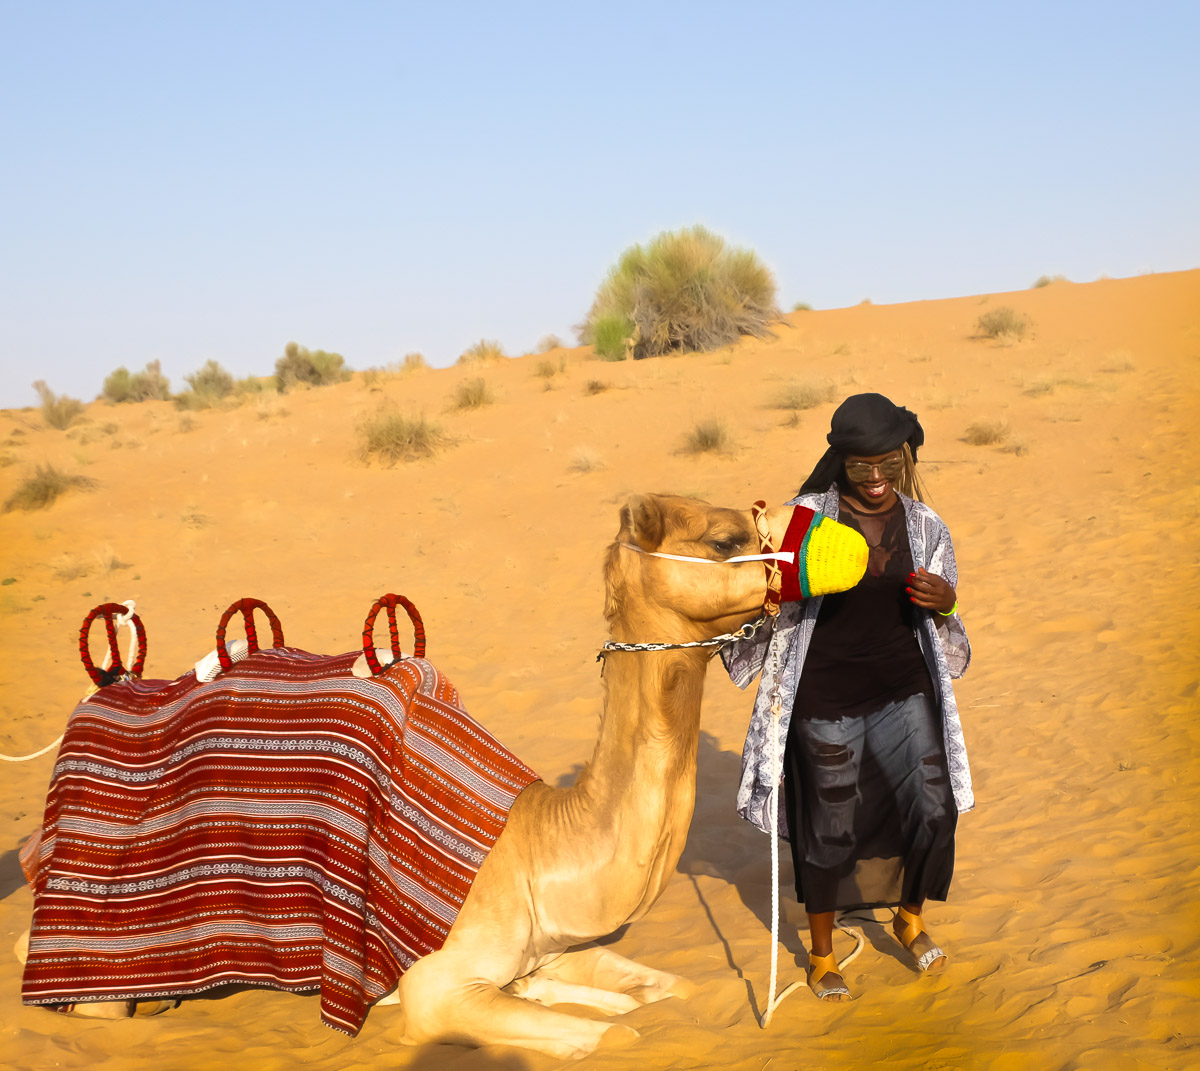 Me and camel.jpg